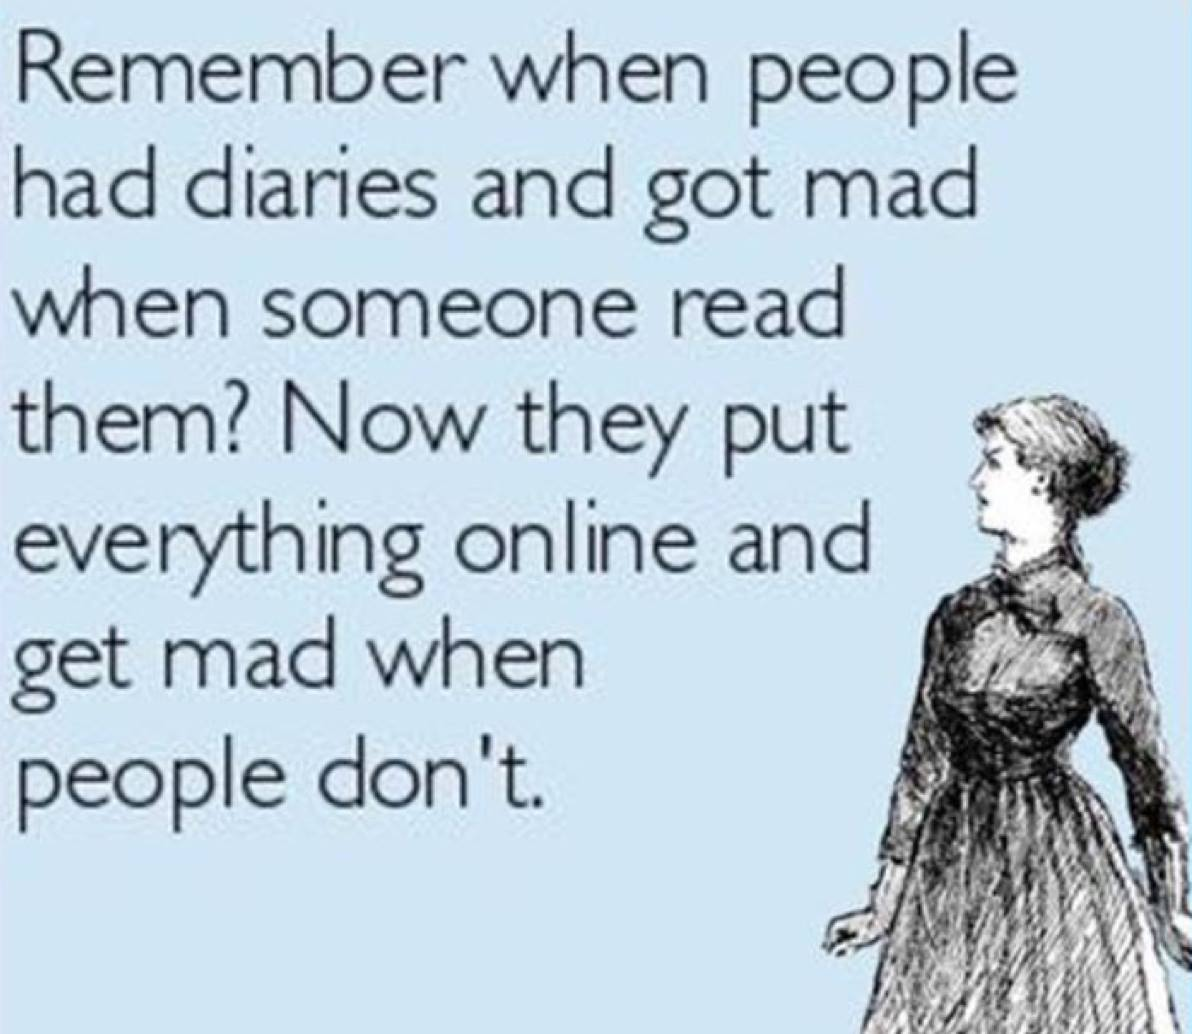 remember when people had diaries and got mad when someone read them?, now they put everything online and get mad when people don't, card